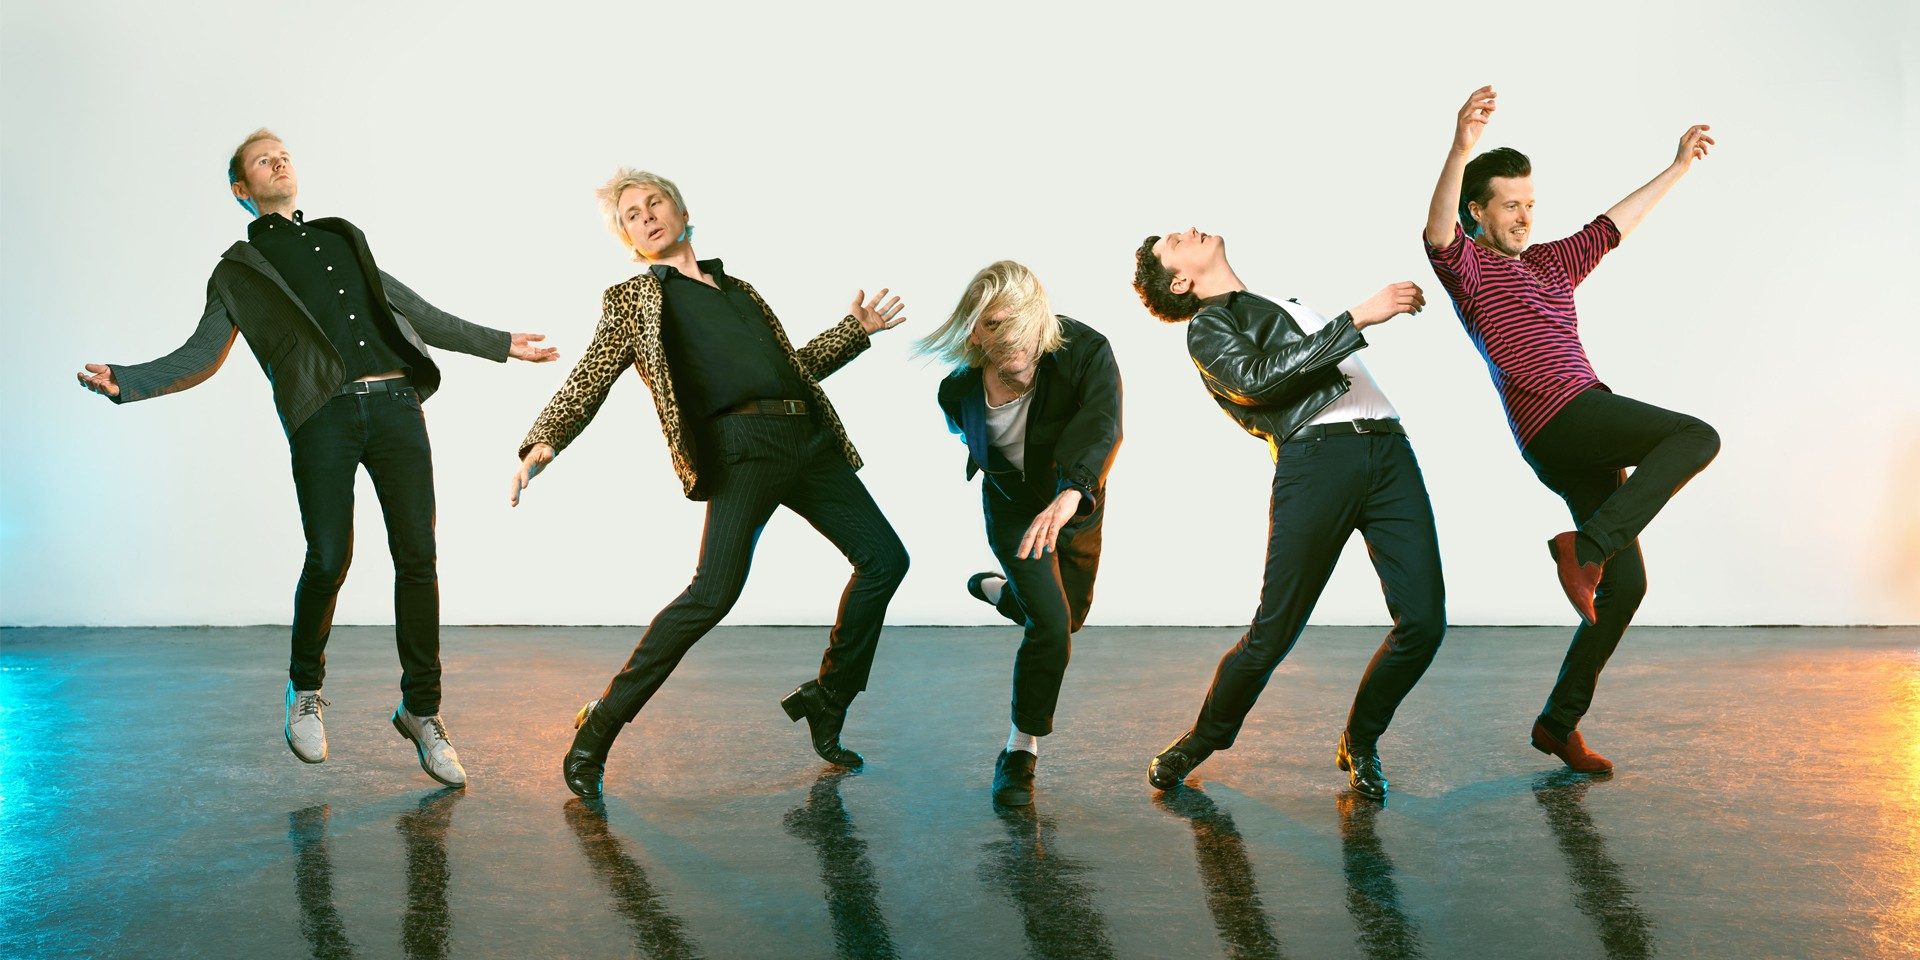 Franz Ferdinand are coming to Singapore